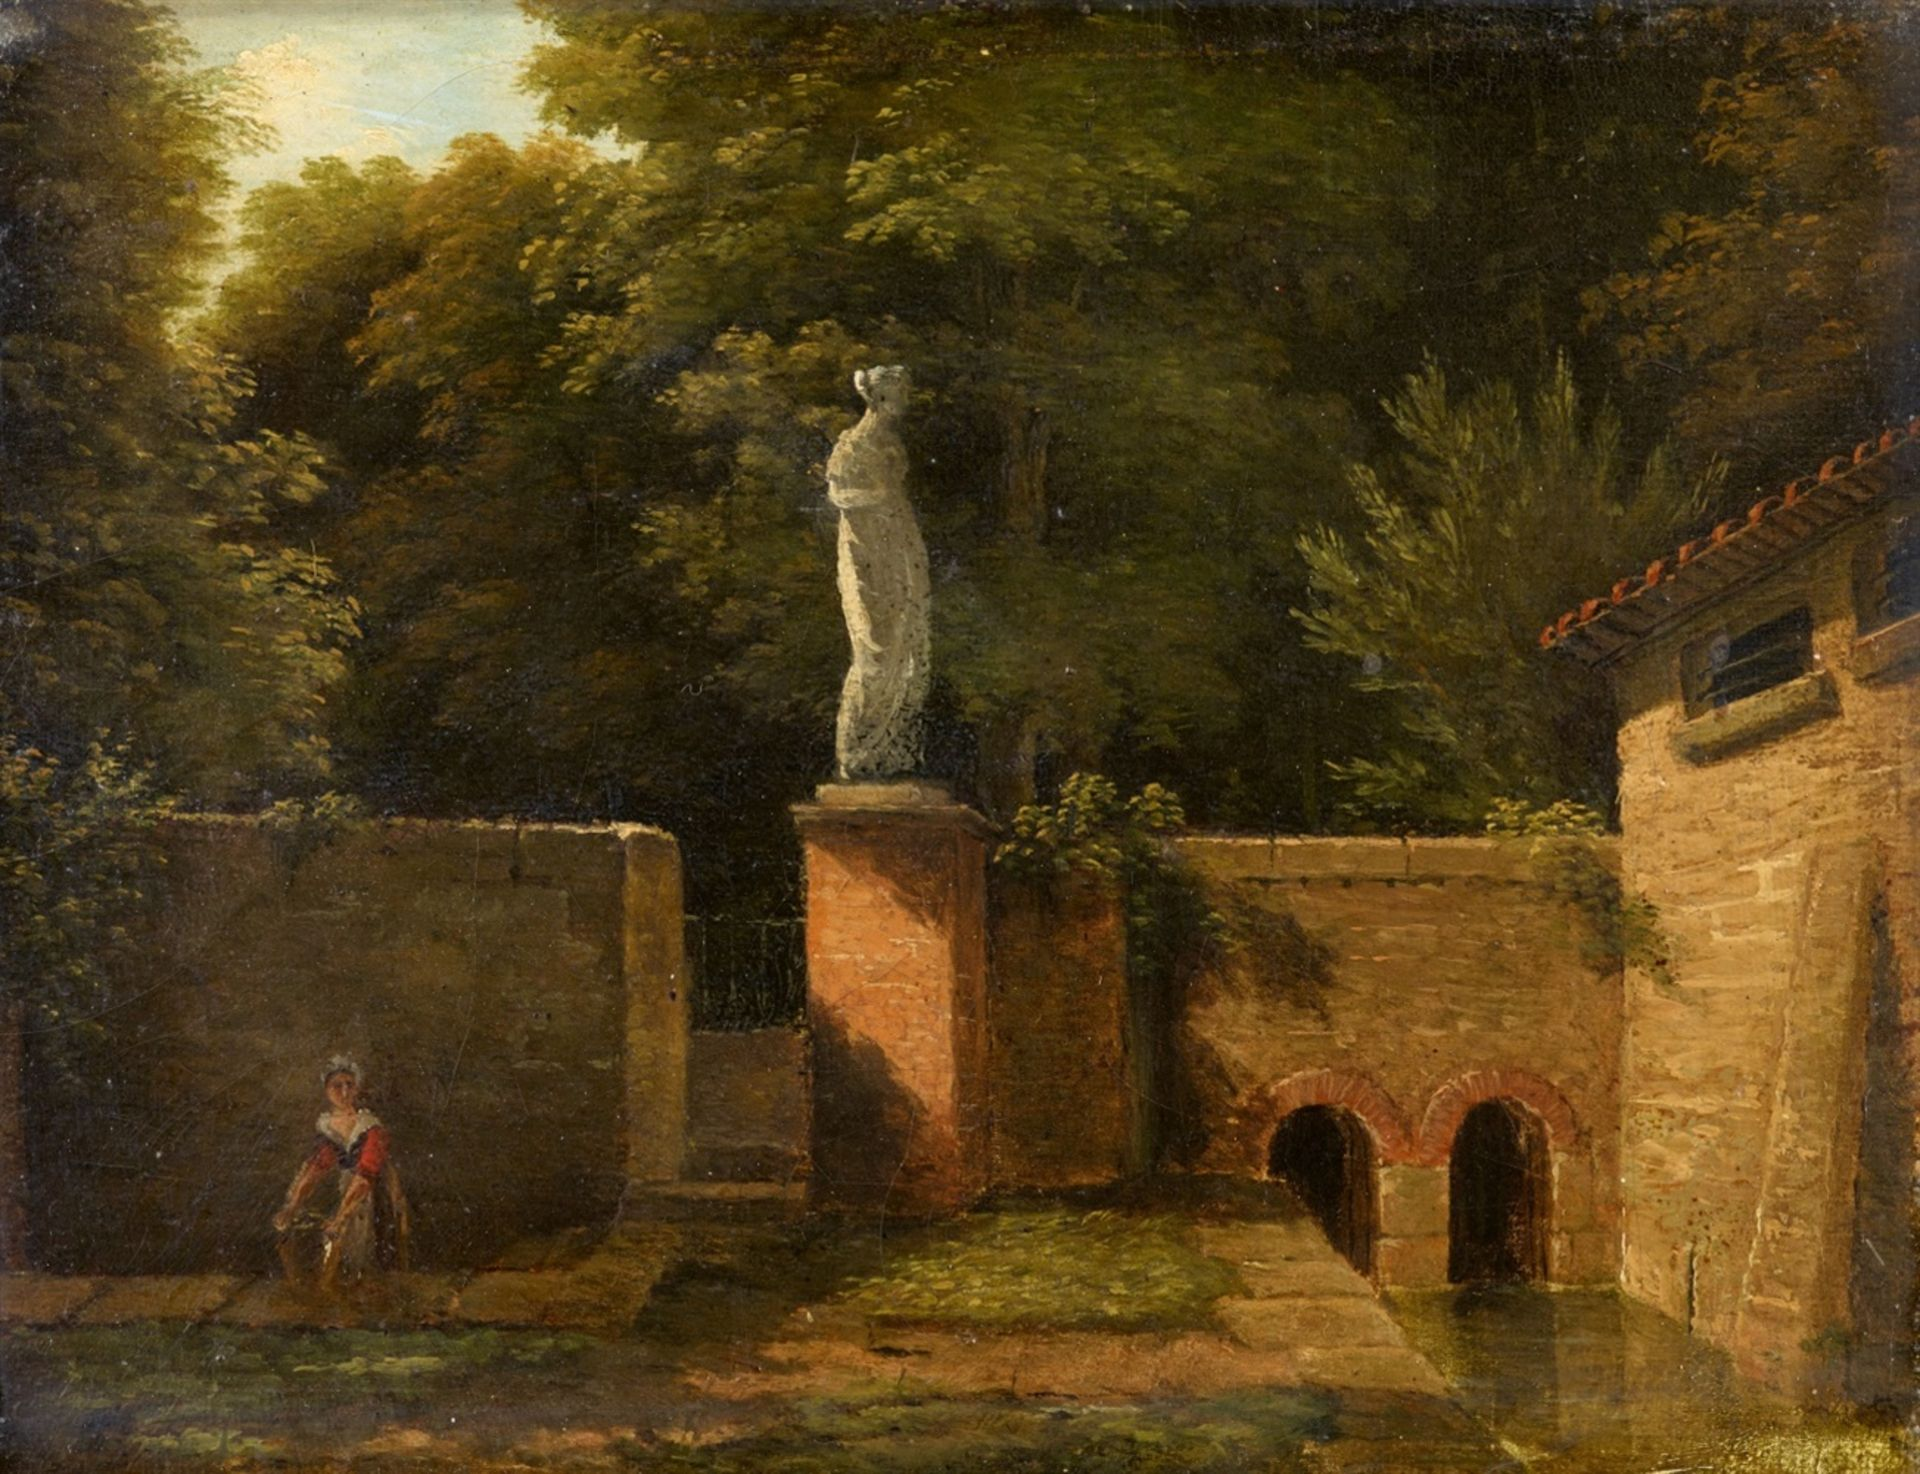 Los 2506 - Jean-Victor BertinView of a Park with Fountain and Marble SculptureOil on canvas. 16.5 x 22 cm.